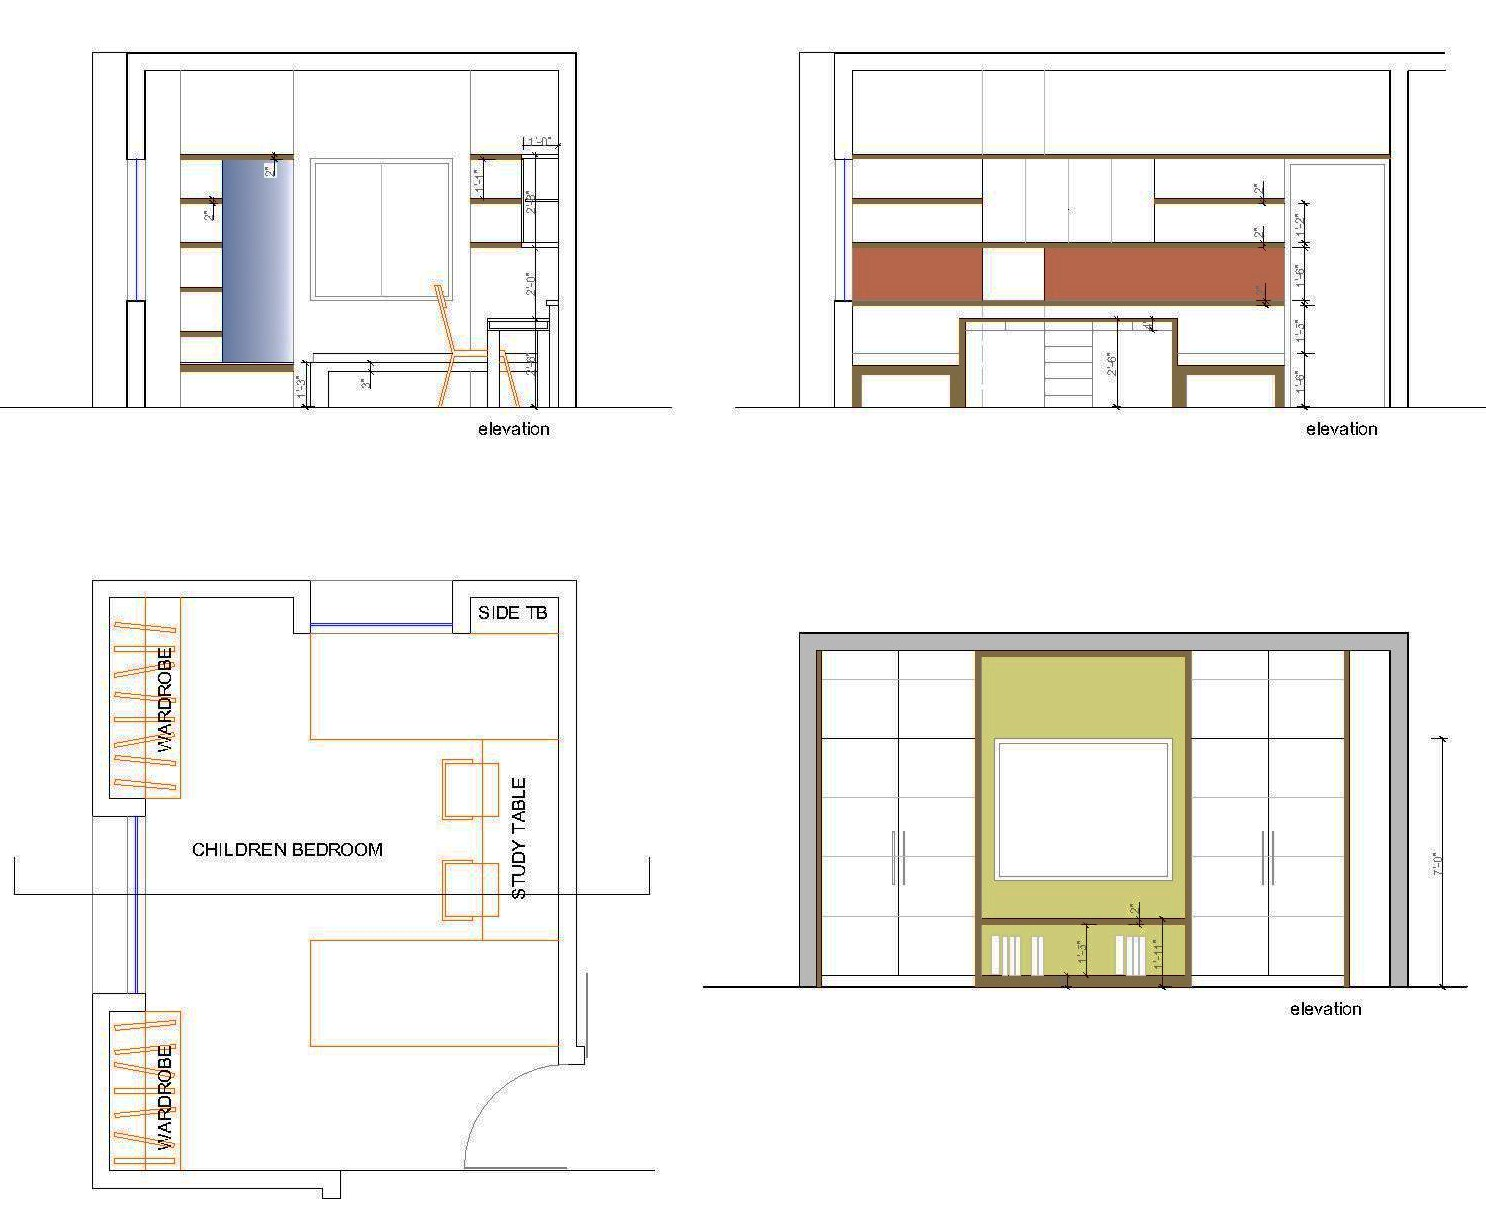 Front Elevation Bedrooms : Study table front elevation